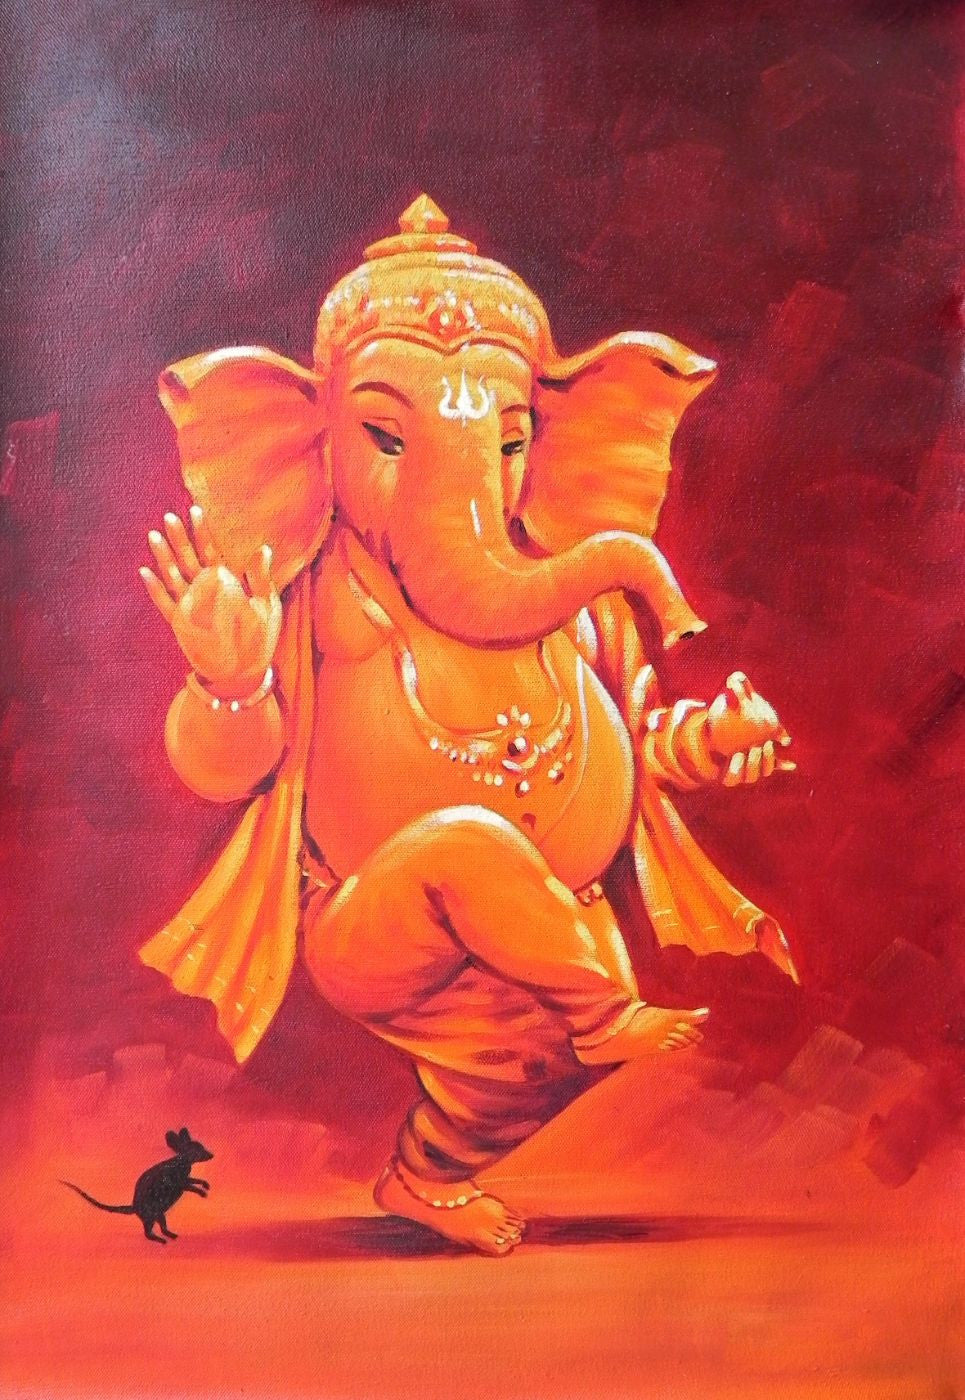 Ganesha Paintings — Large Size Ganesha Paintings | Buy Posters, Frames, Canvas, Digital Art & Large Size Prints